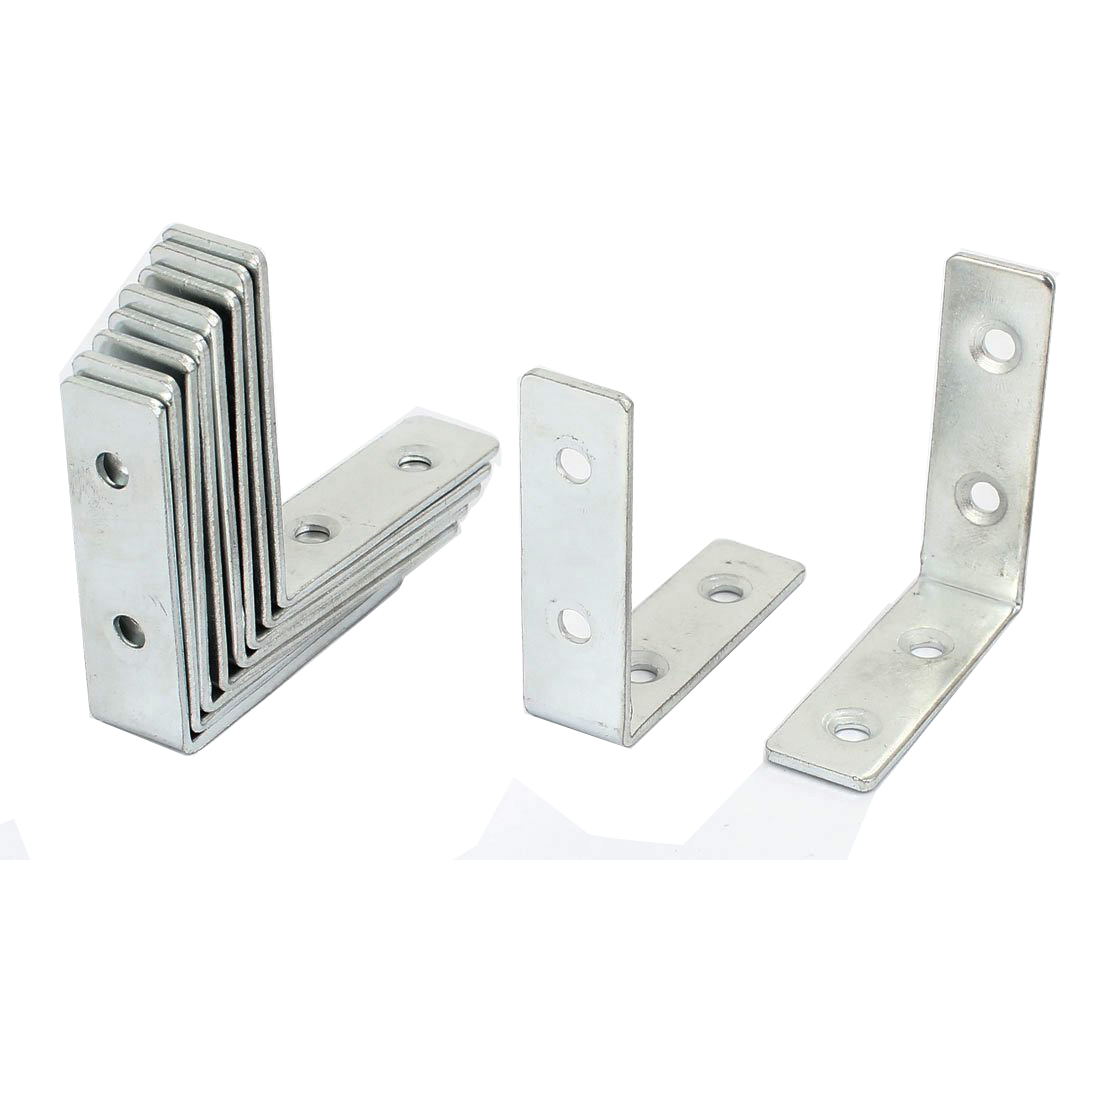 Wholesale 5pcs(10Pcs 50x50mm Corner Brace Joint Right Angle Brackets Fasteners Silver рамка номерного знака dollex spl 16